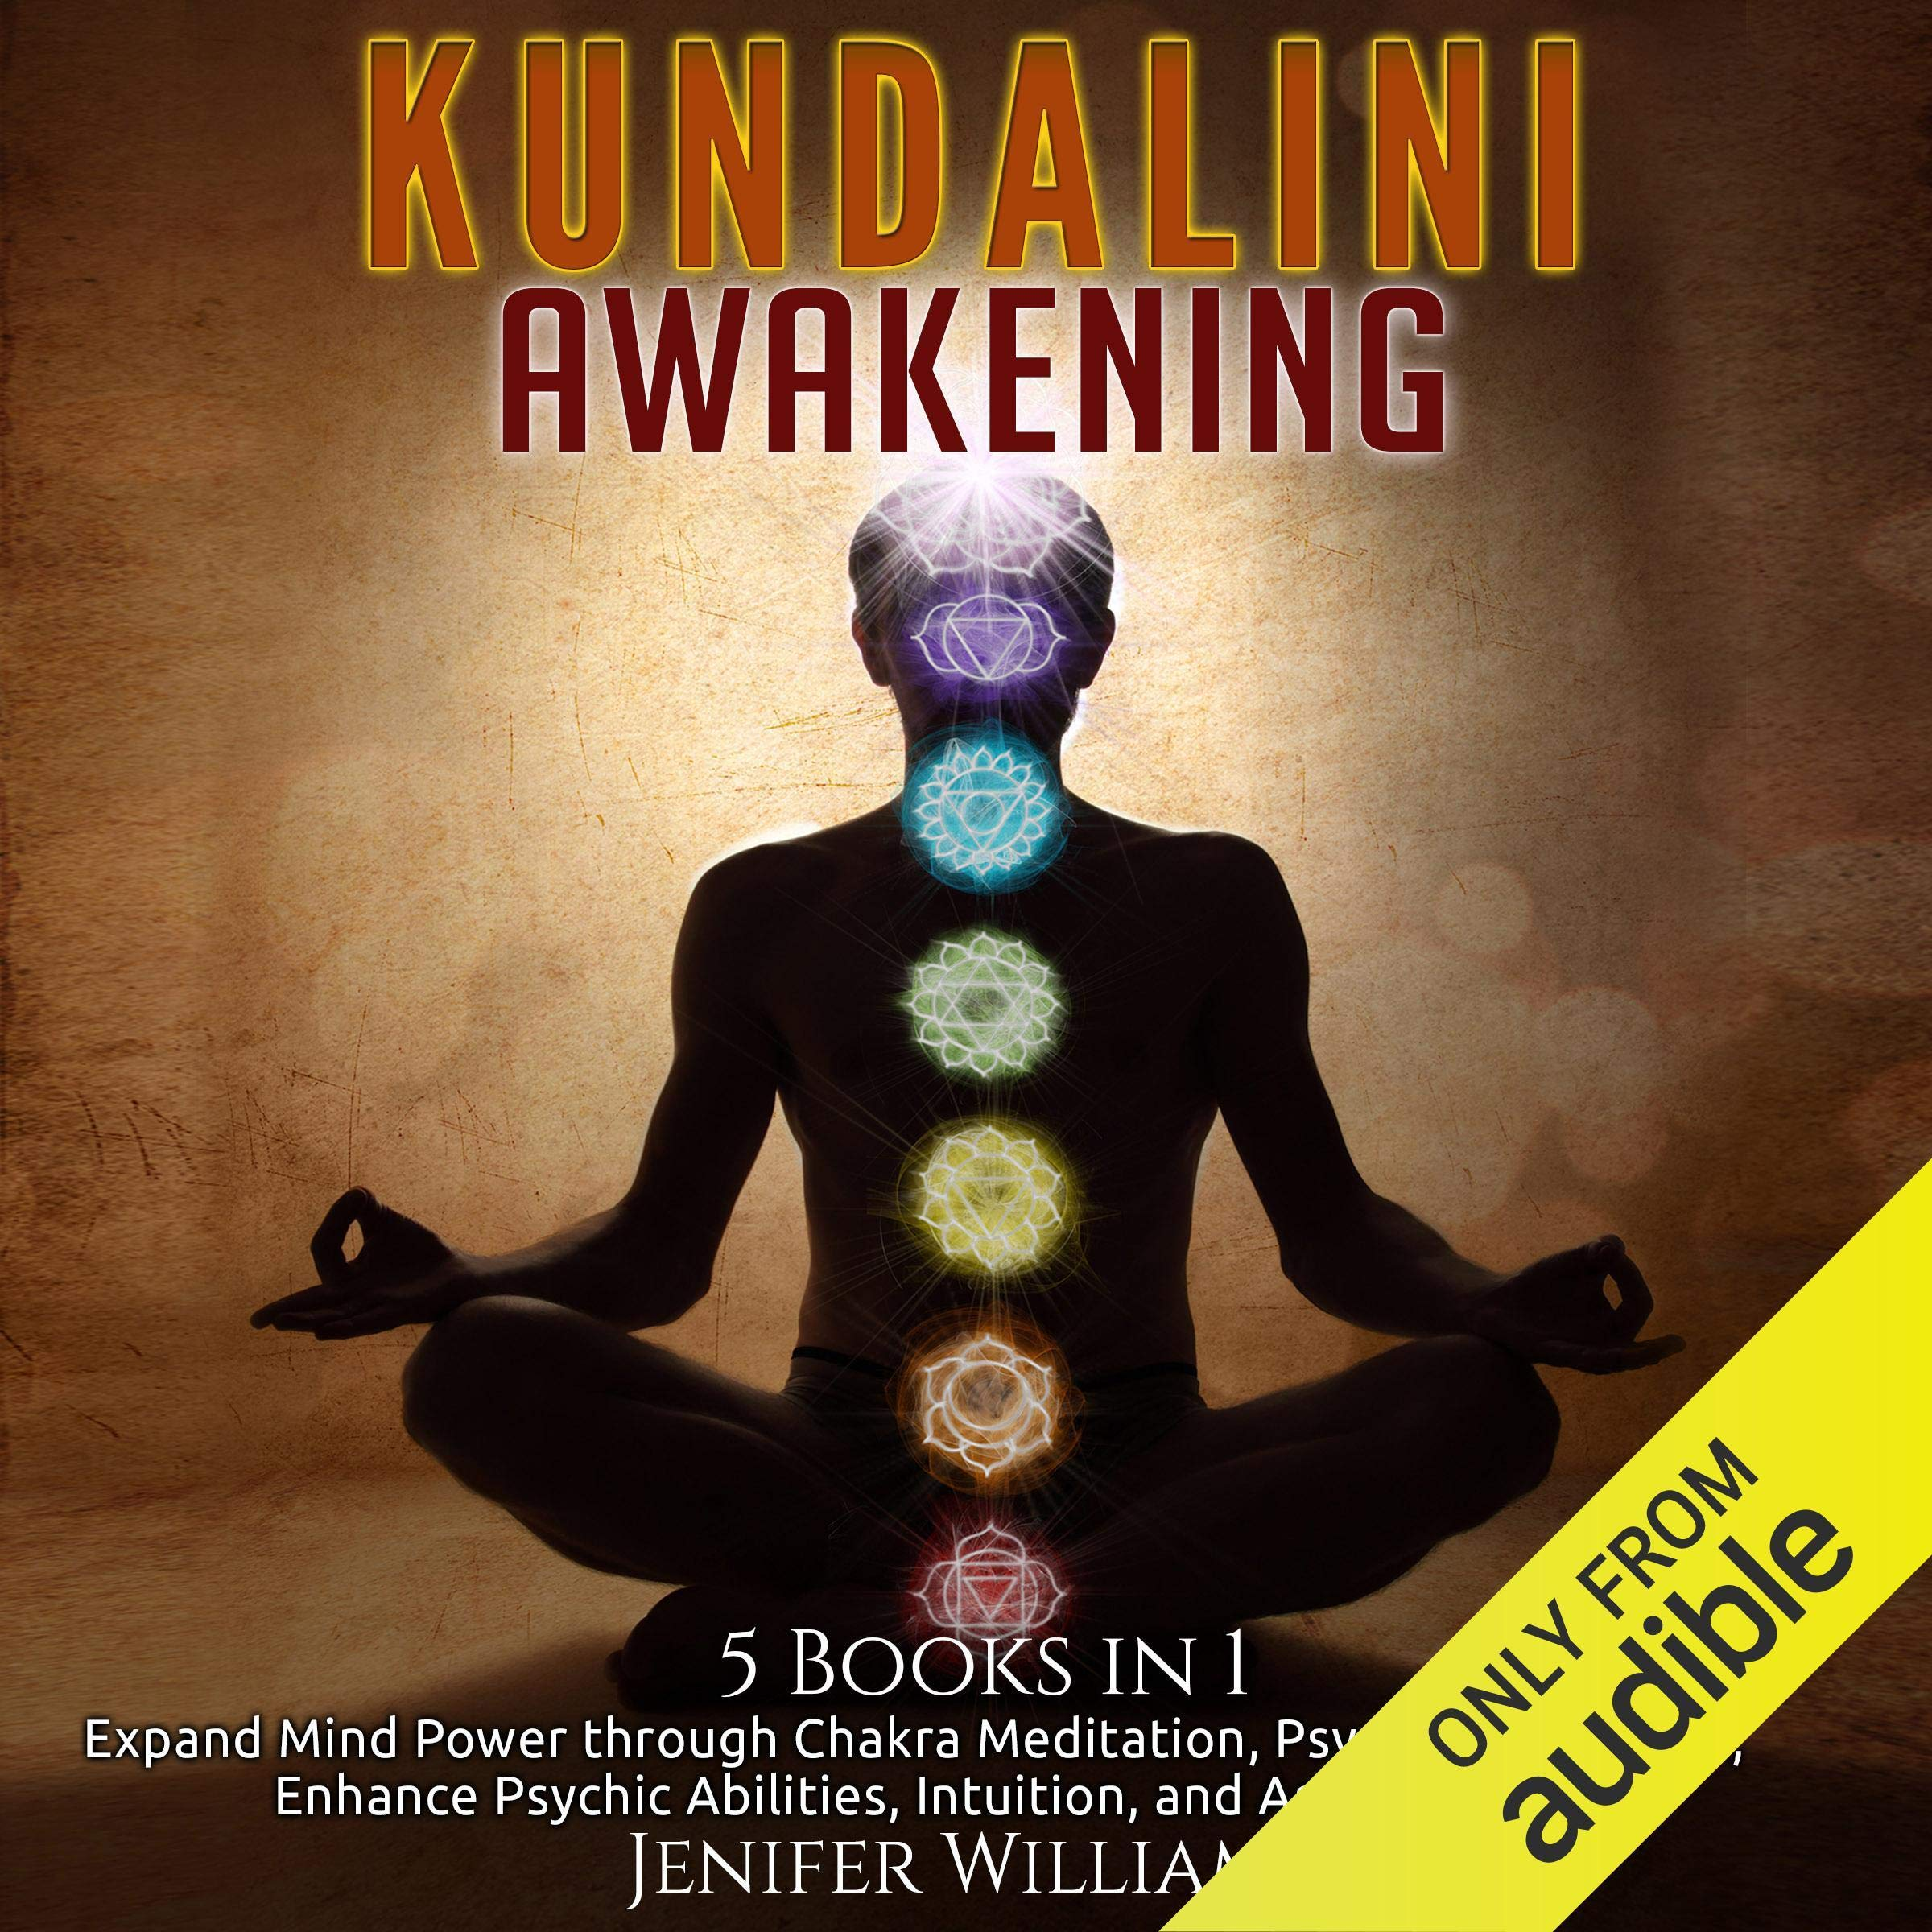 Kundalini Awakening: 5 in 1 Bundle: Expand Mind Power Through Chakra Meditation Psychic Awareness Enhance Psychic Abilities Intuition and Astral Travel